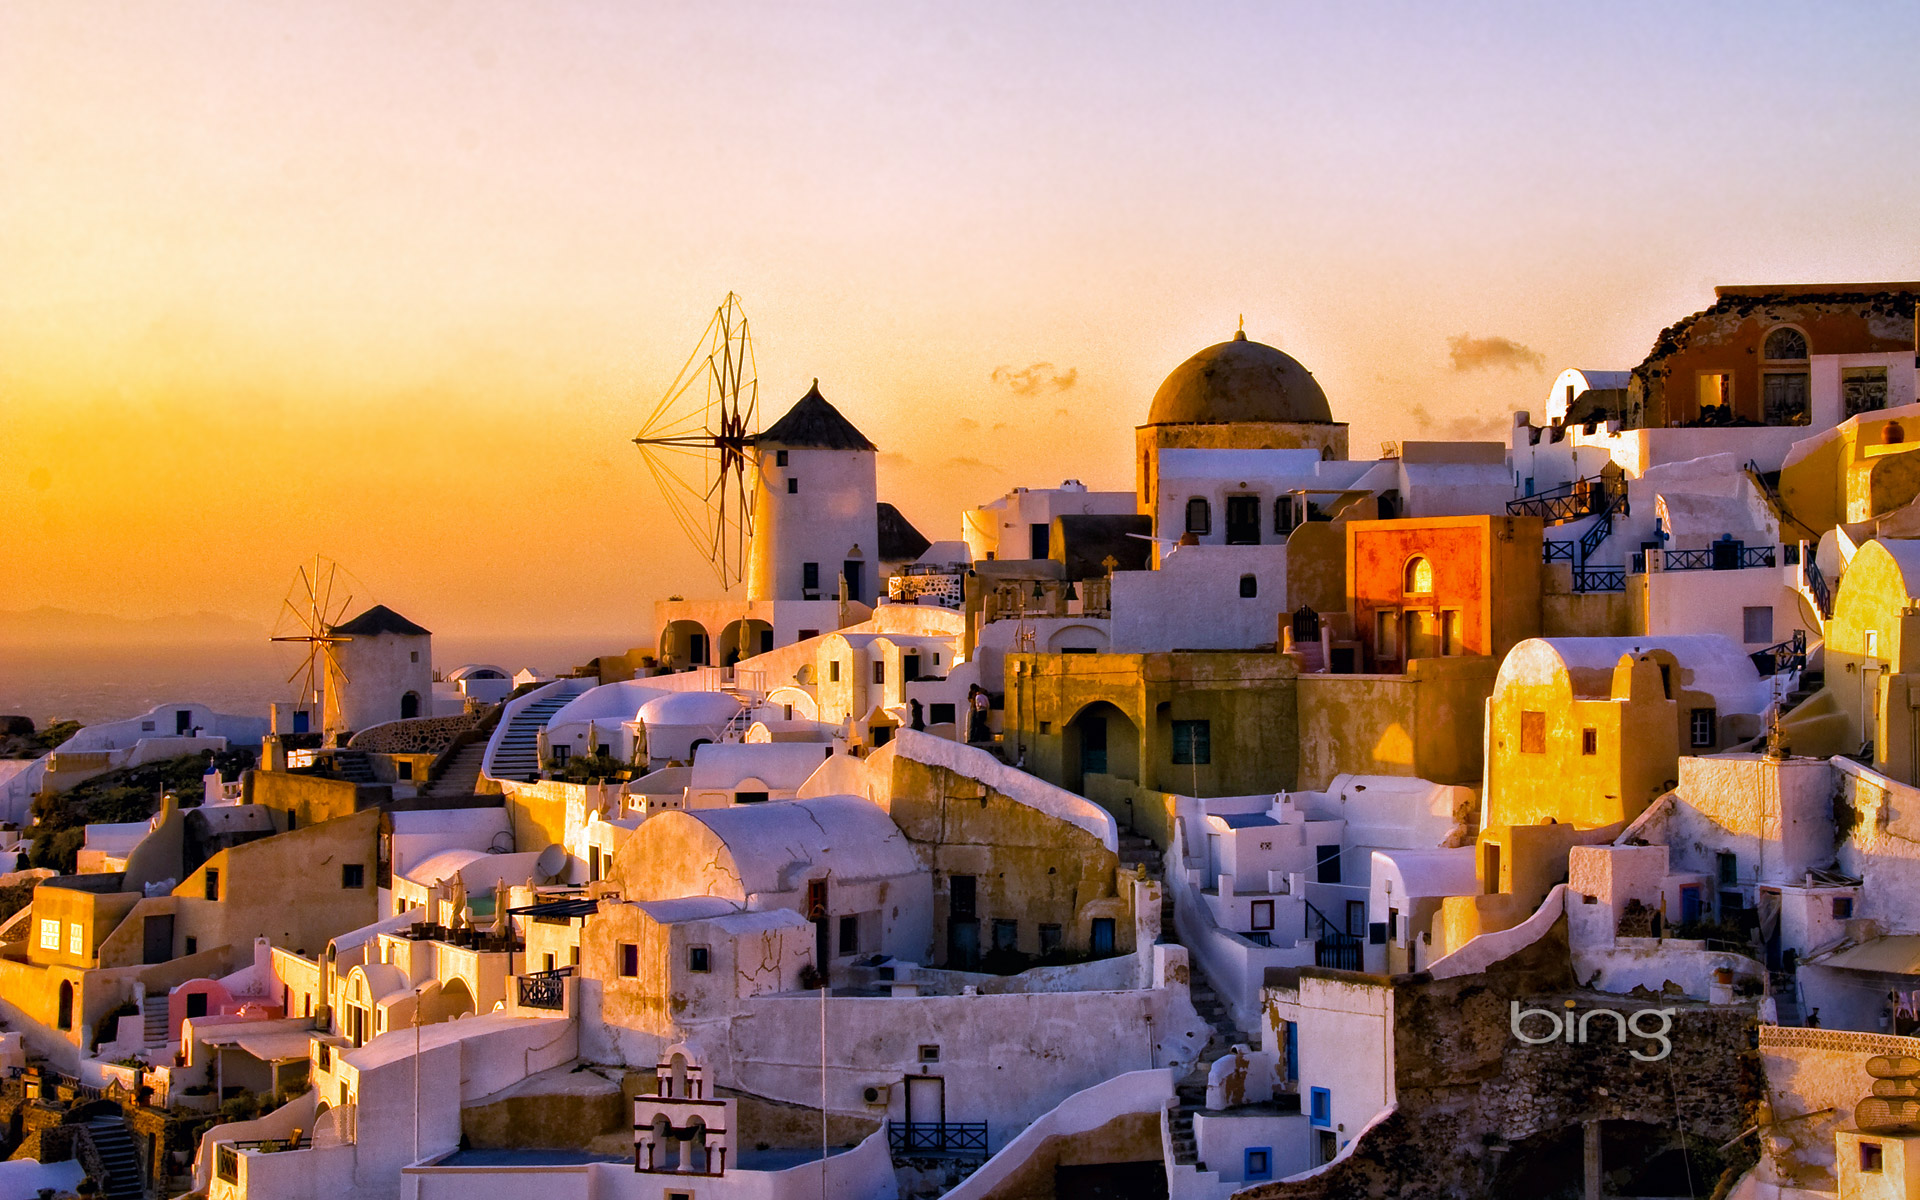 Oia at sunset on Thíra (Santoríni), Greece